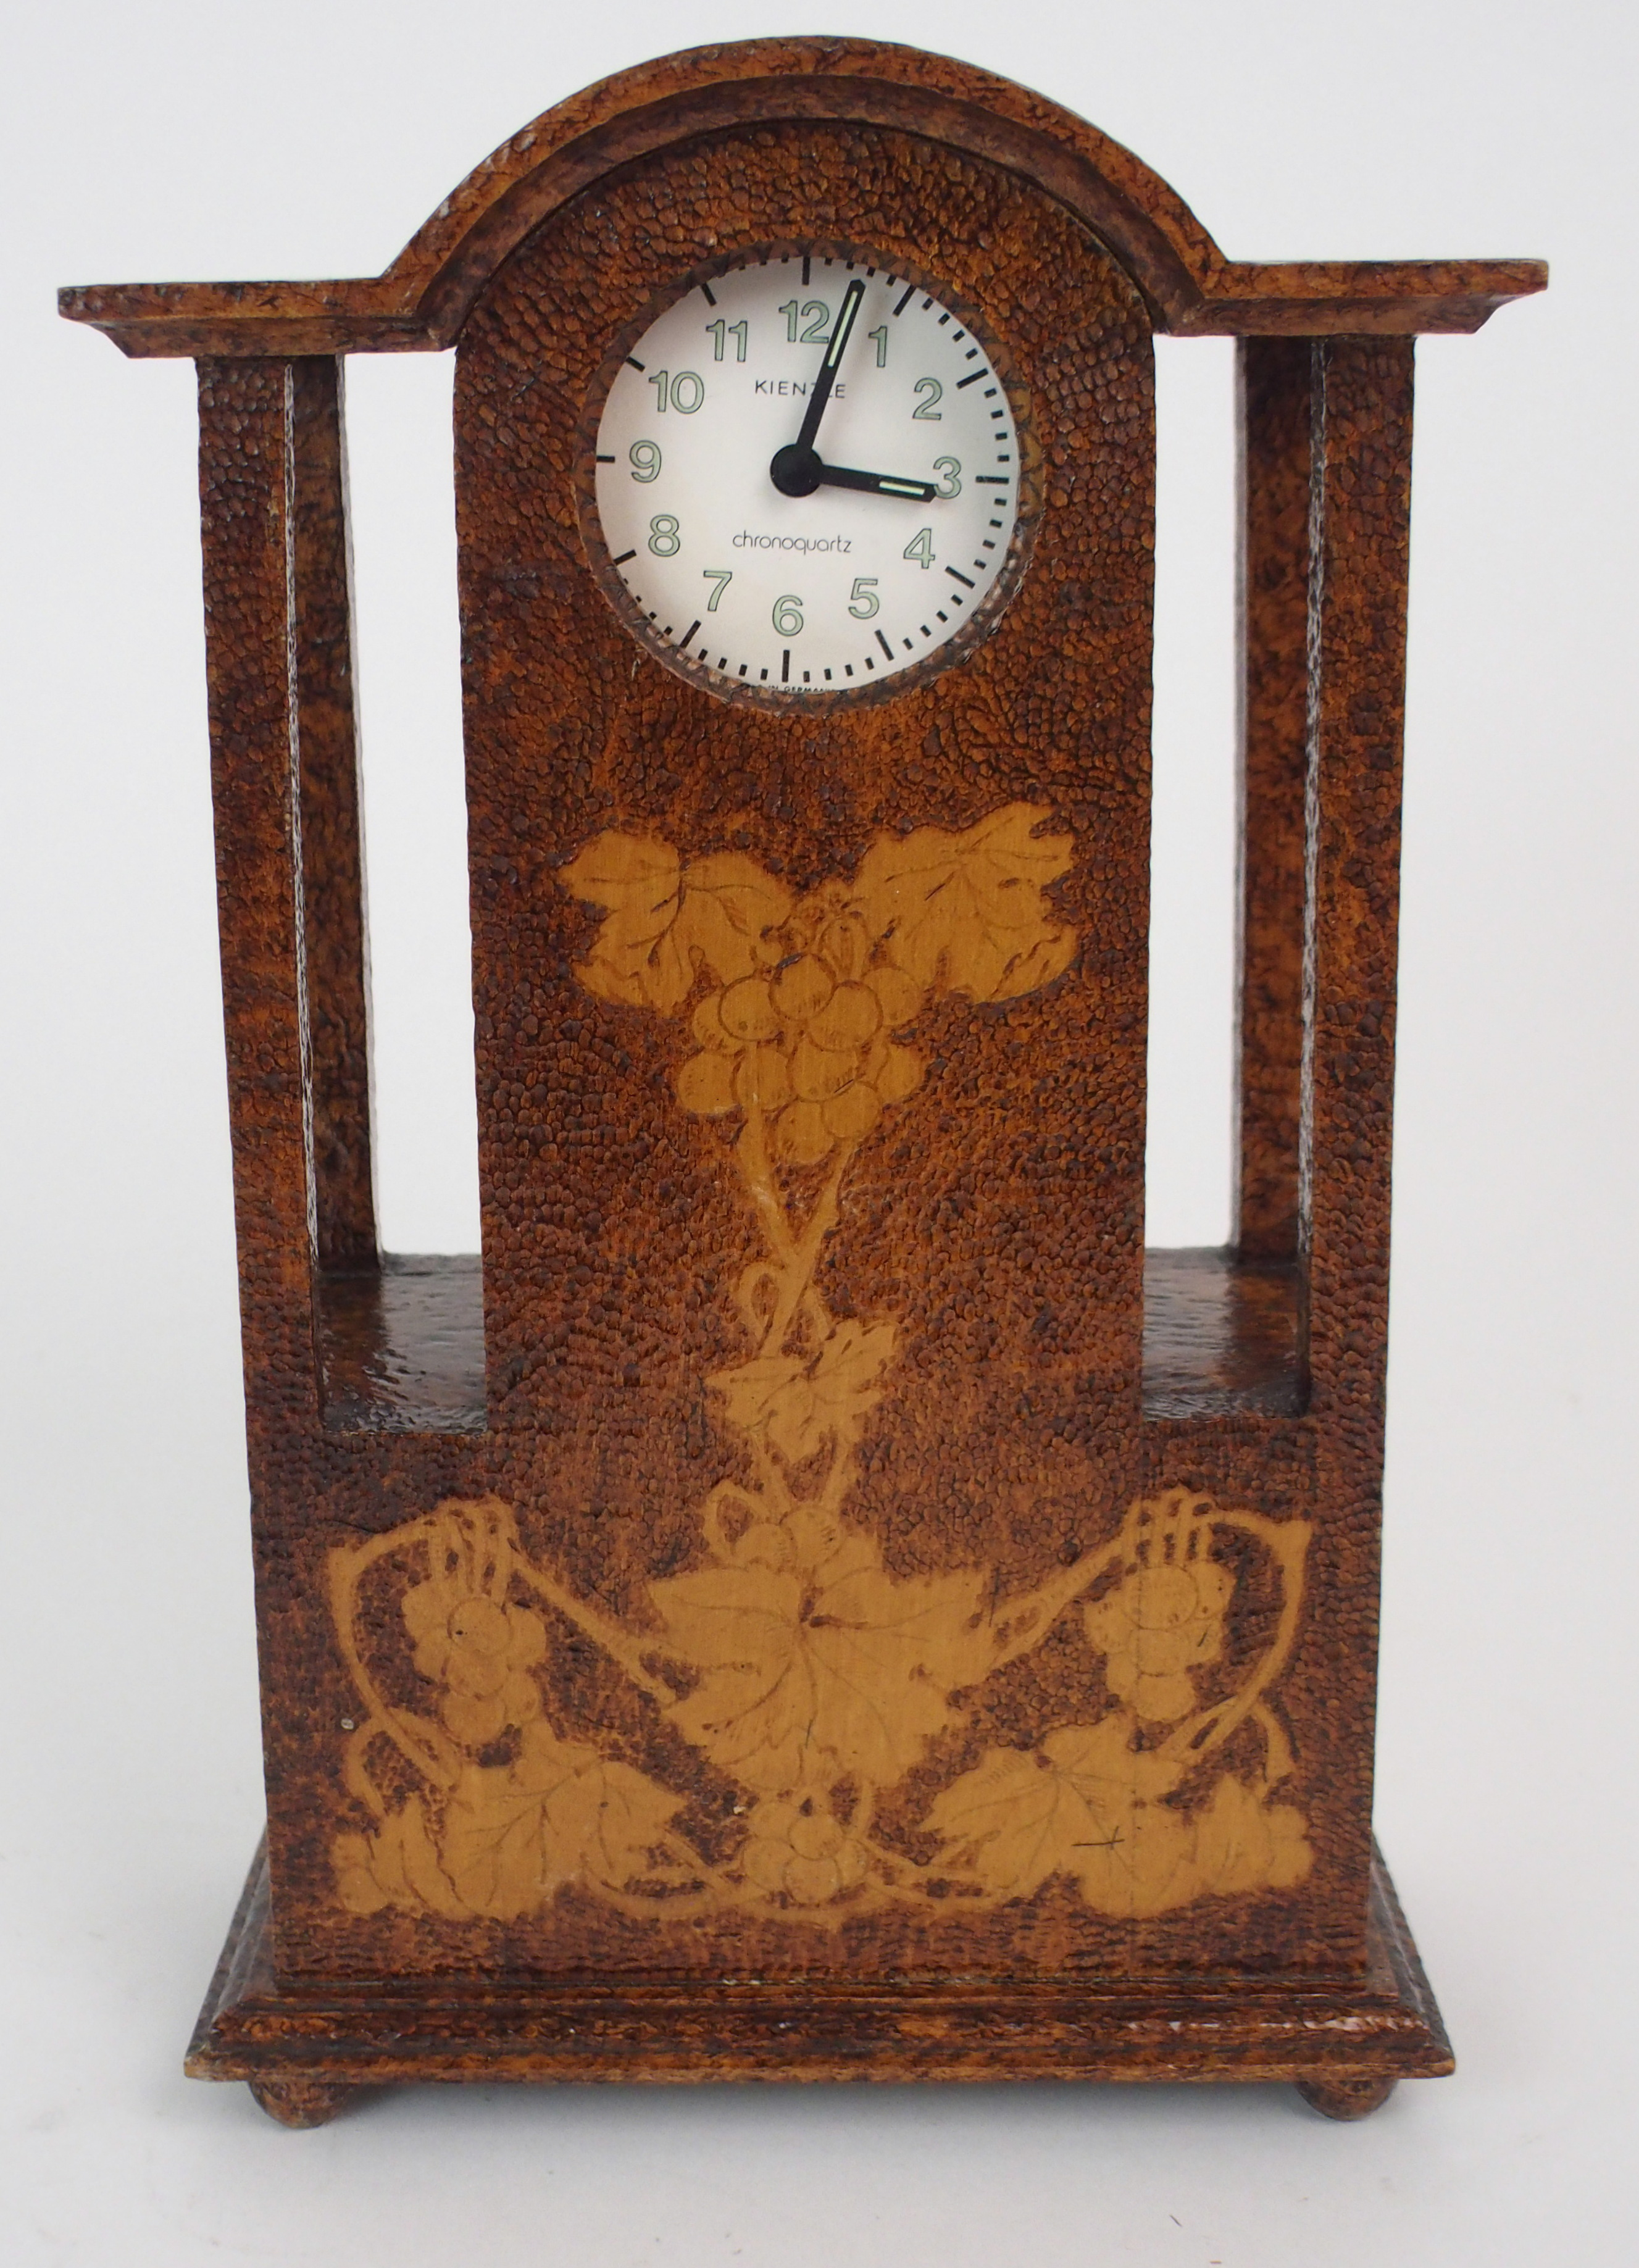 THE FOLLOWING THREE LOTS WERE DESIGNED BY BOXWORKS EMPLOYEE JOHN COOK. A MAUCHLINE WARE CLOCK CASE